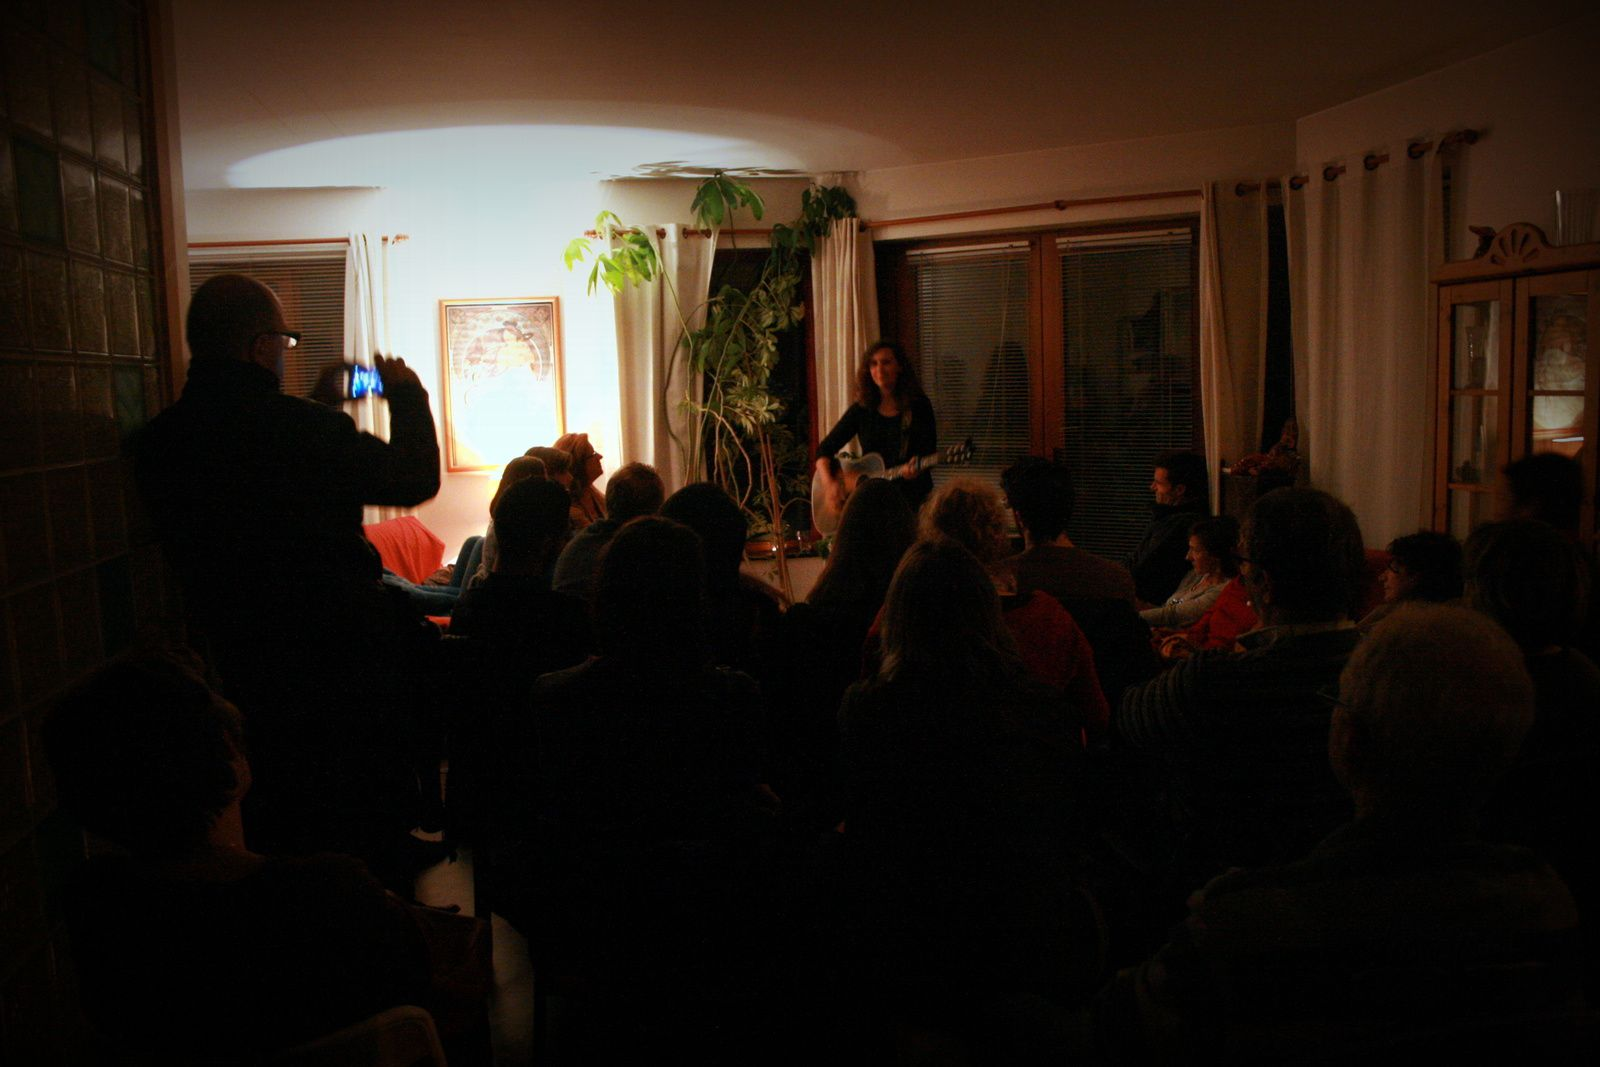 Colline Hill @ Home concert (Drogenbos) - 11/10/2015